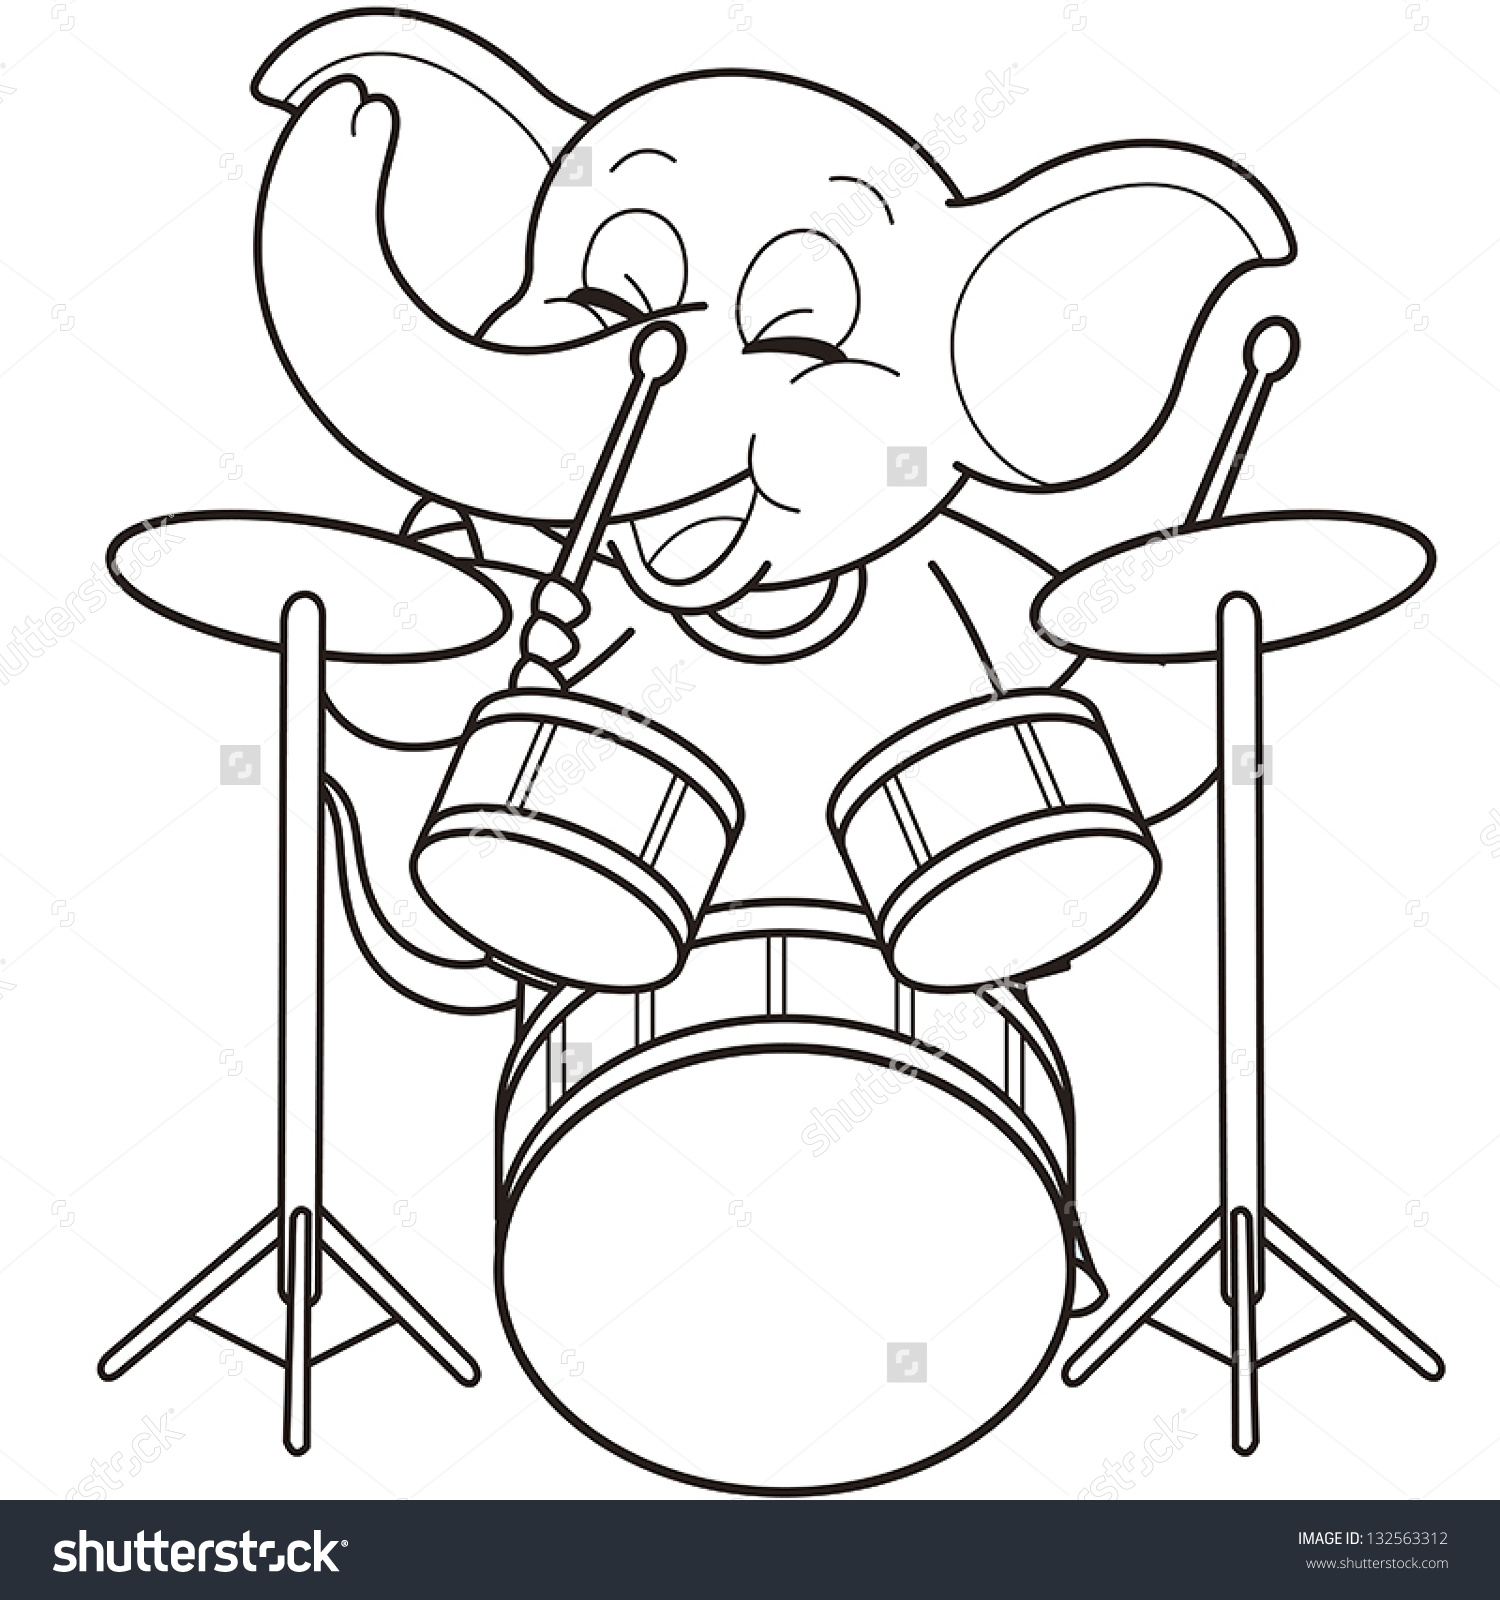 Coloring pictures drums - Cartoon Elephant Playing Drums Black And White